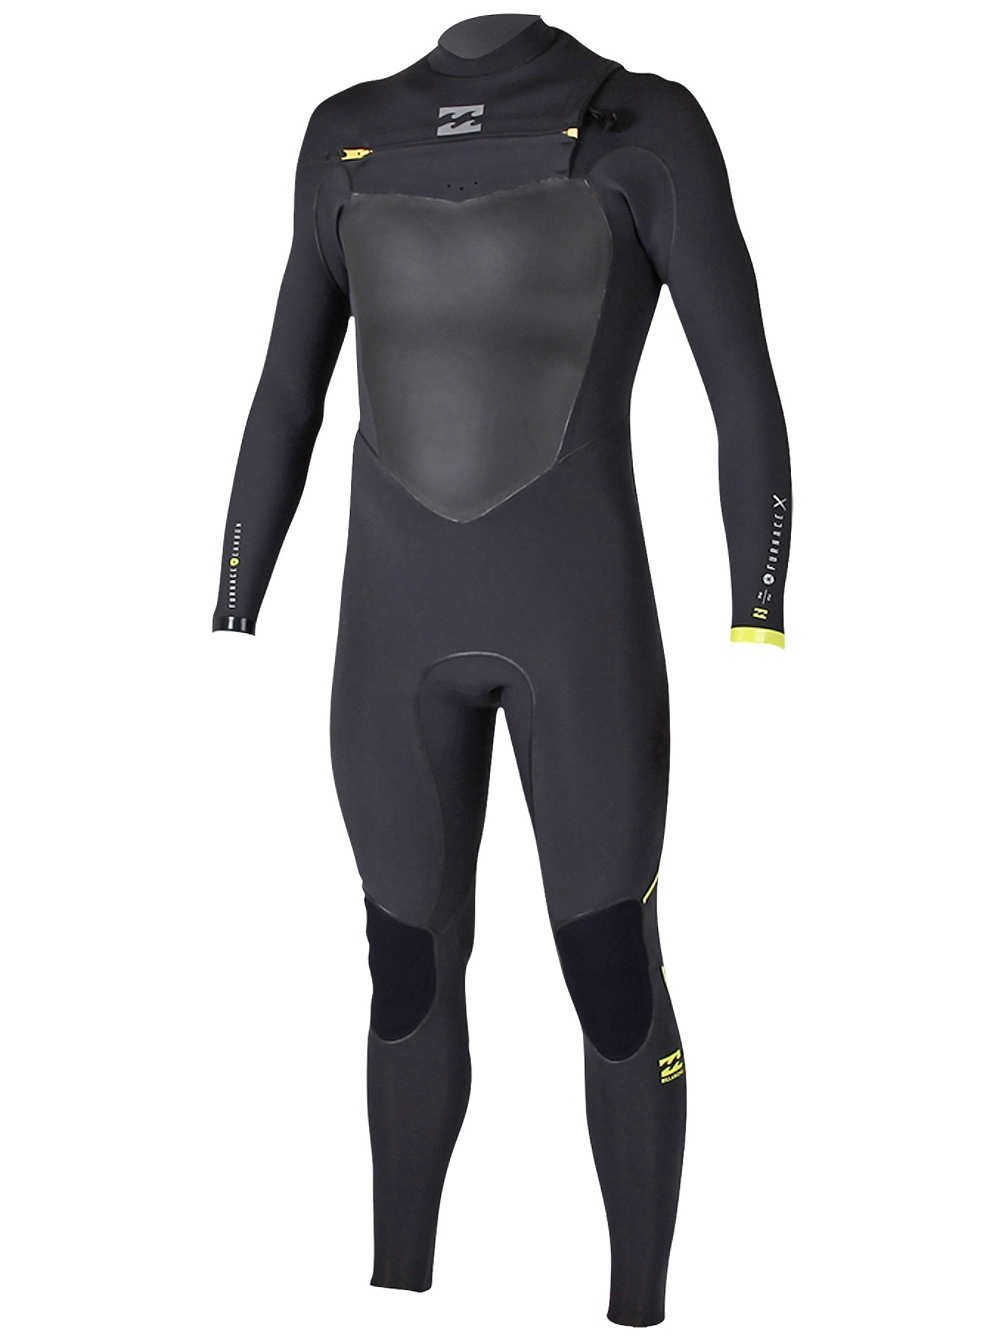 BILLABONG 2016 Furnace X 4 3mm Chest Zip Steamer Wetsuit schwarz Z44M02